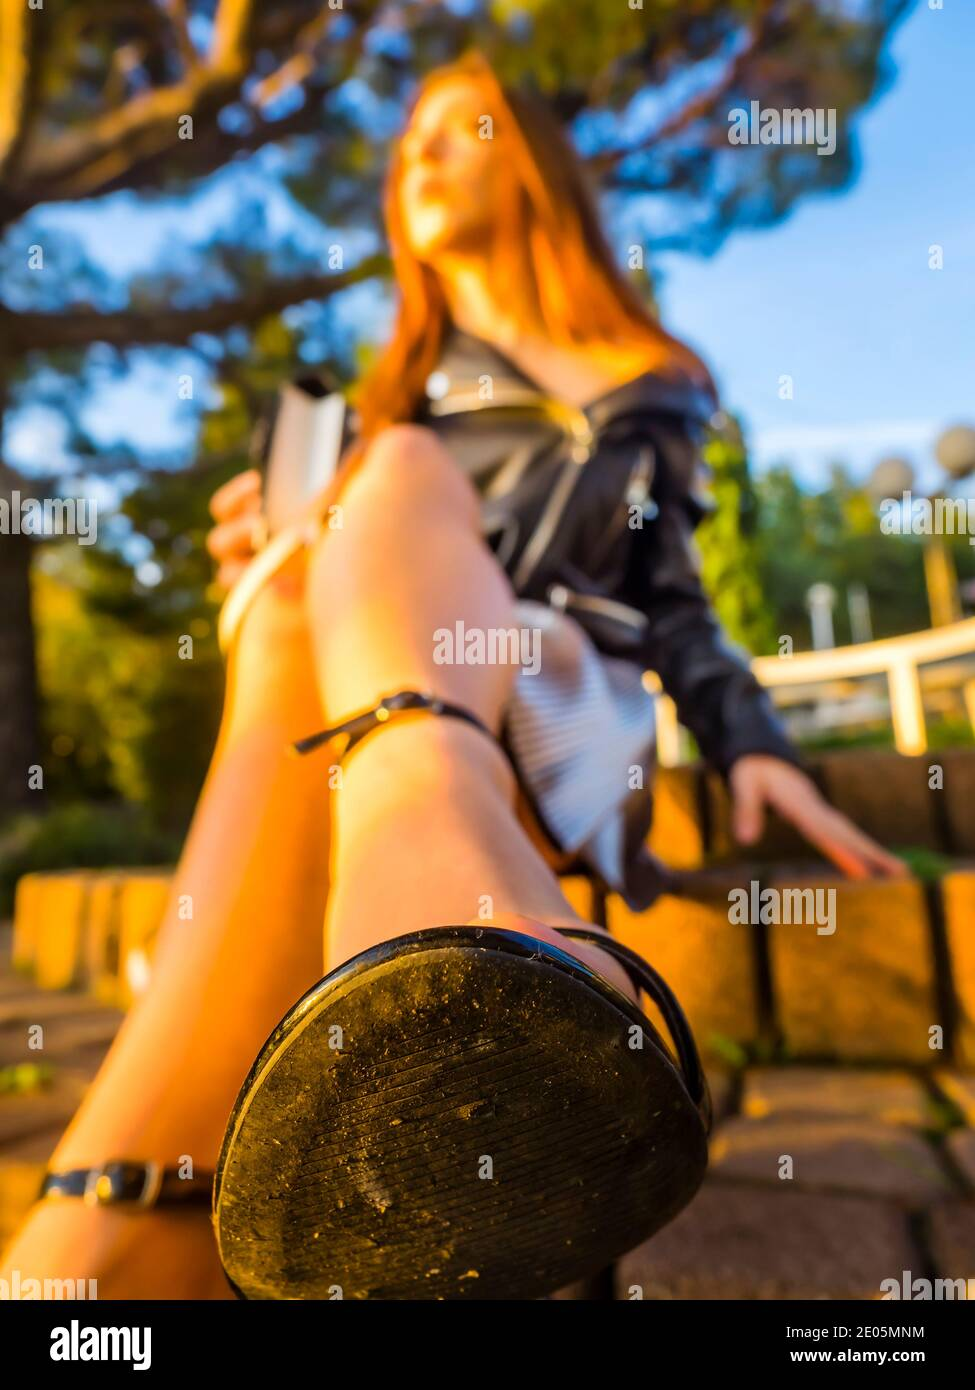 Teengirl sitting in park under lit by warm late afternoon sunset light legs heels full length whole body closeup close-up macro on shoe tip isolated Stock Photo